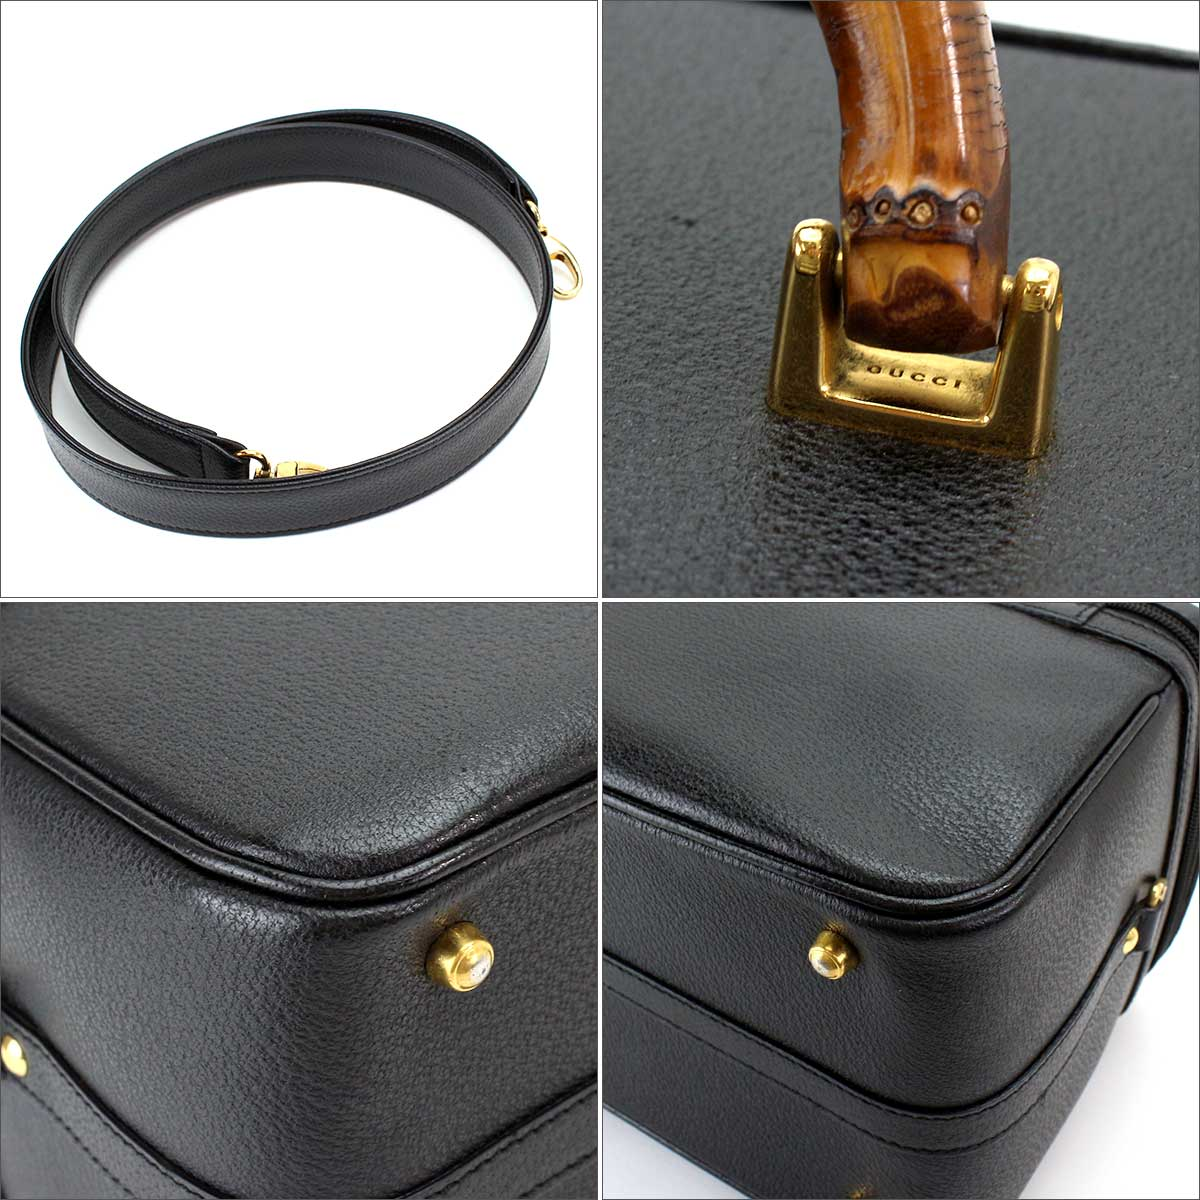 343150320c62 ... With Gucci GUCCI bamboo side type vanity 2WAY hand shoulder bag leather  black 013 122 2491